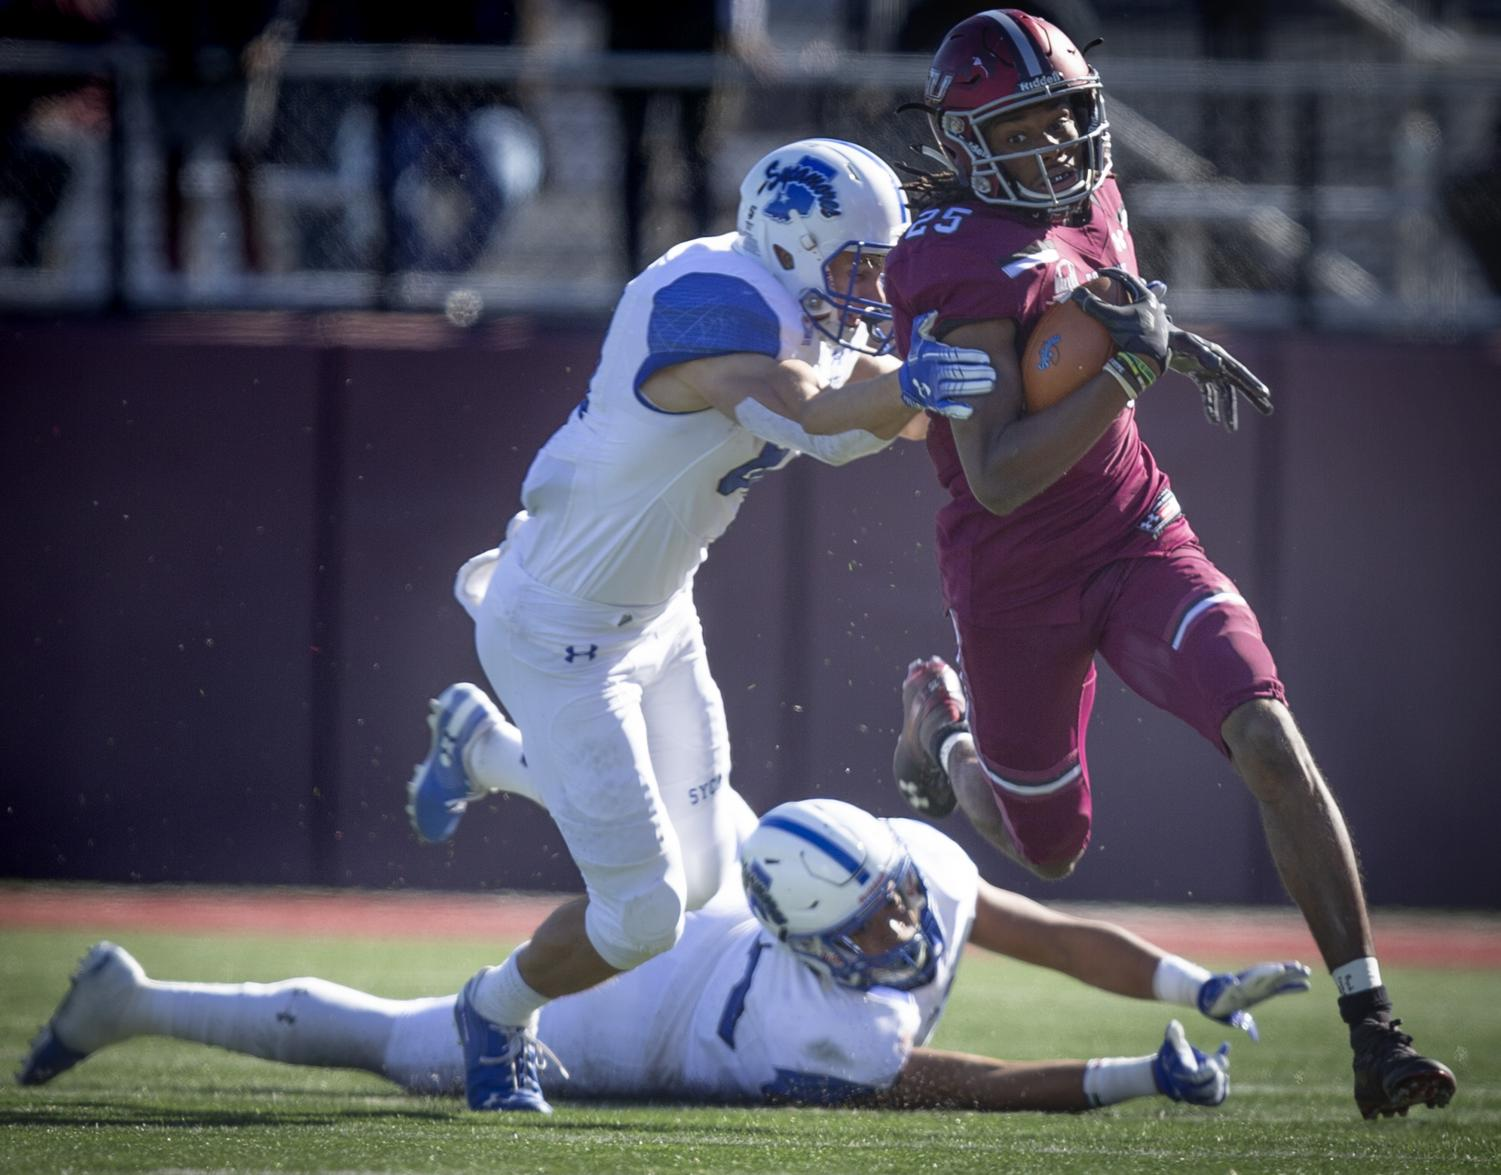 Junior+cornerback+Madre+Harper+advances+the+ball+during+the+Salukis%27+24-21+loss+against+the+Indiana+State+Sycamores+at+Saluki+Stadium%2C+Saturday%2C+Oct.+20%2C+2018.+%28Isabel+Miller+%7C+%40IsabelMillerDE%29